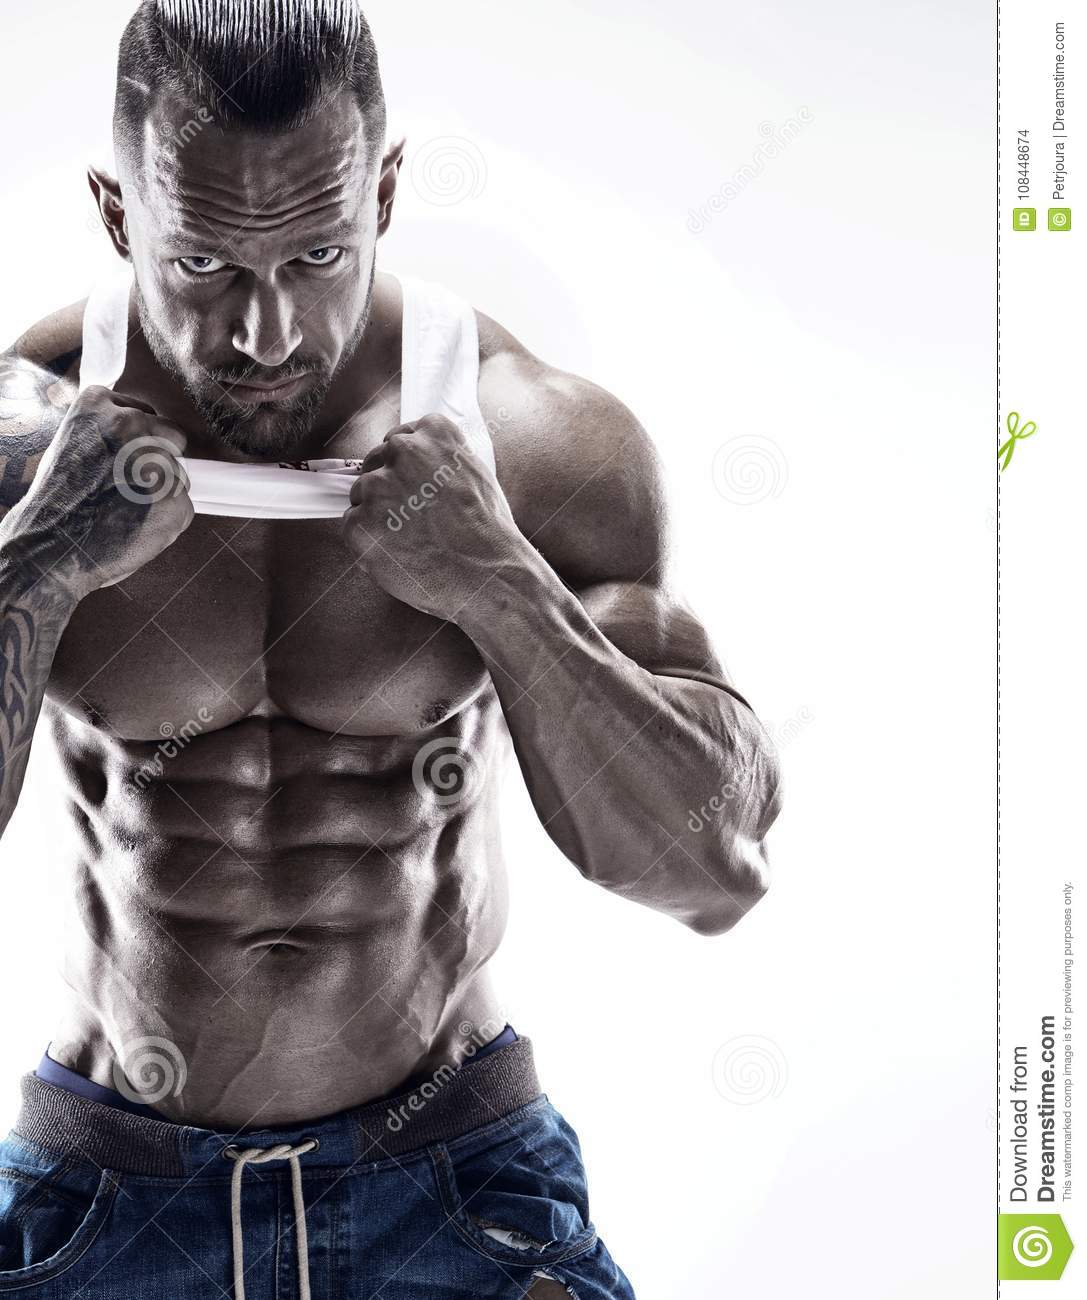 Portrait of strong Athletic Fitness man showing big muscles